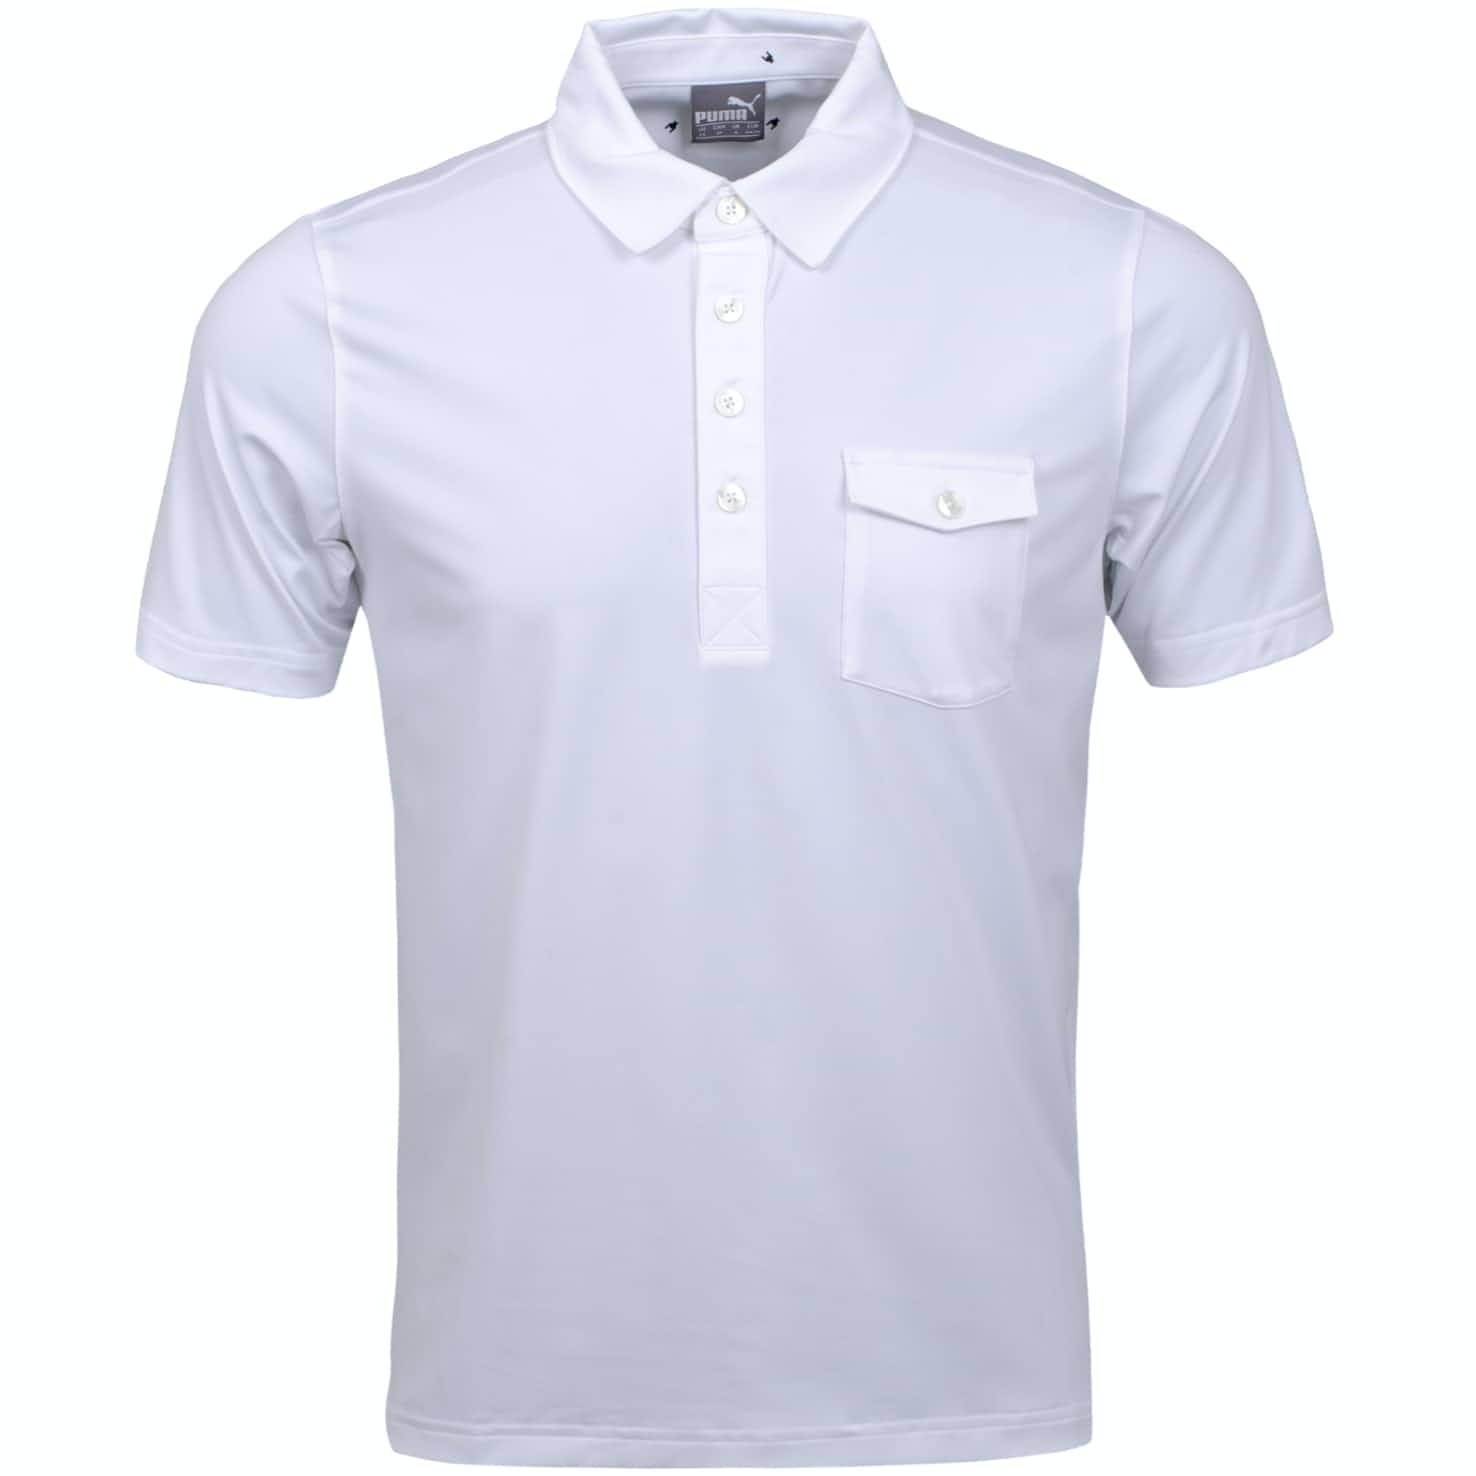 Donegal Polo Bright White - AW19